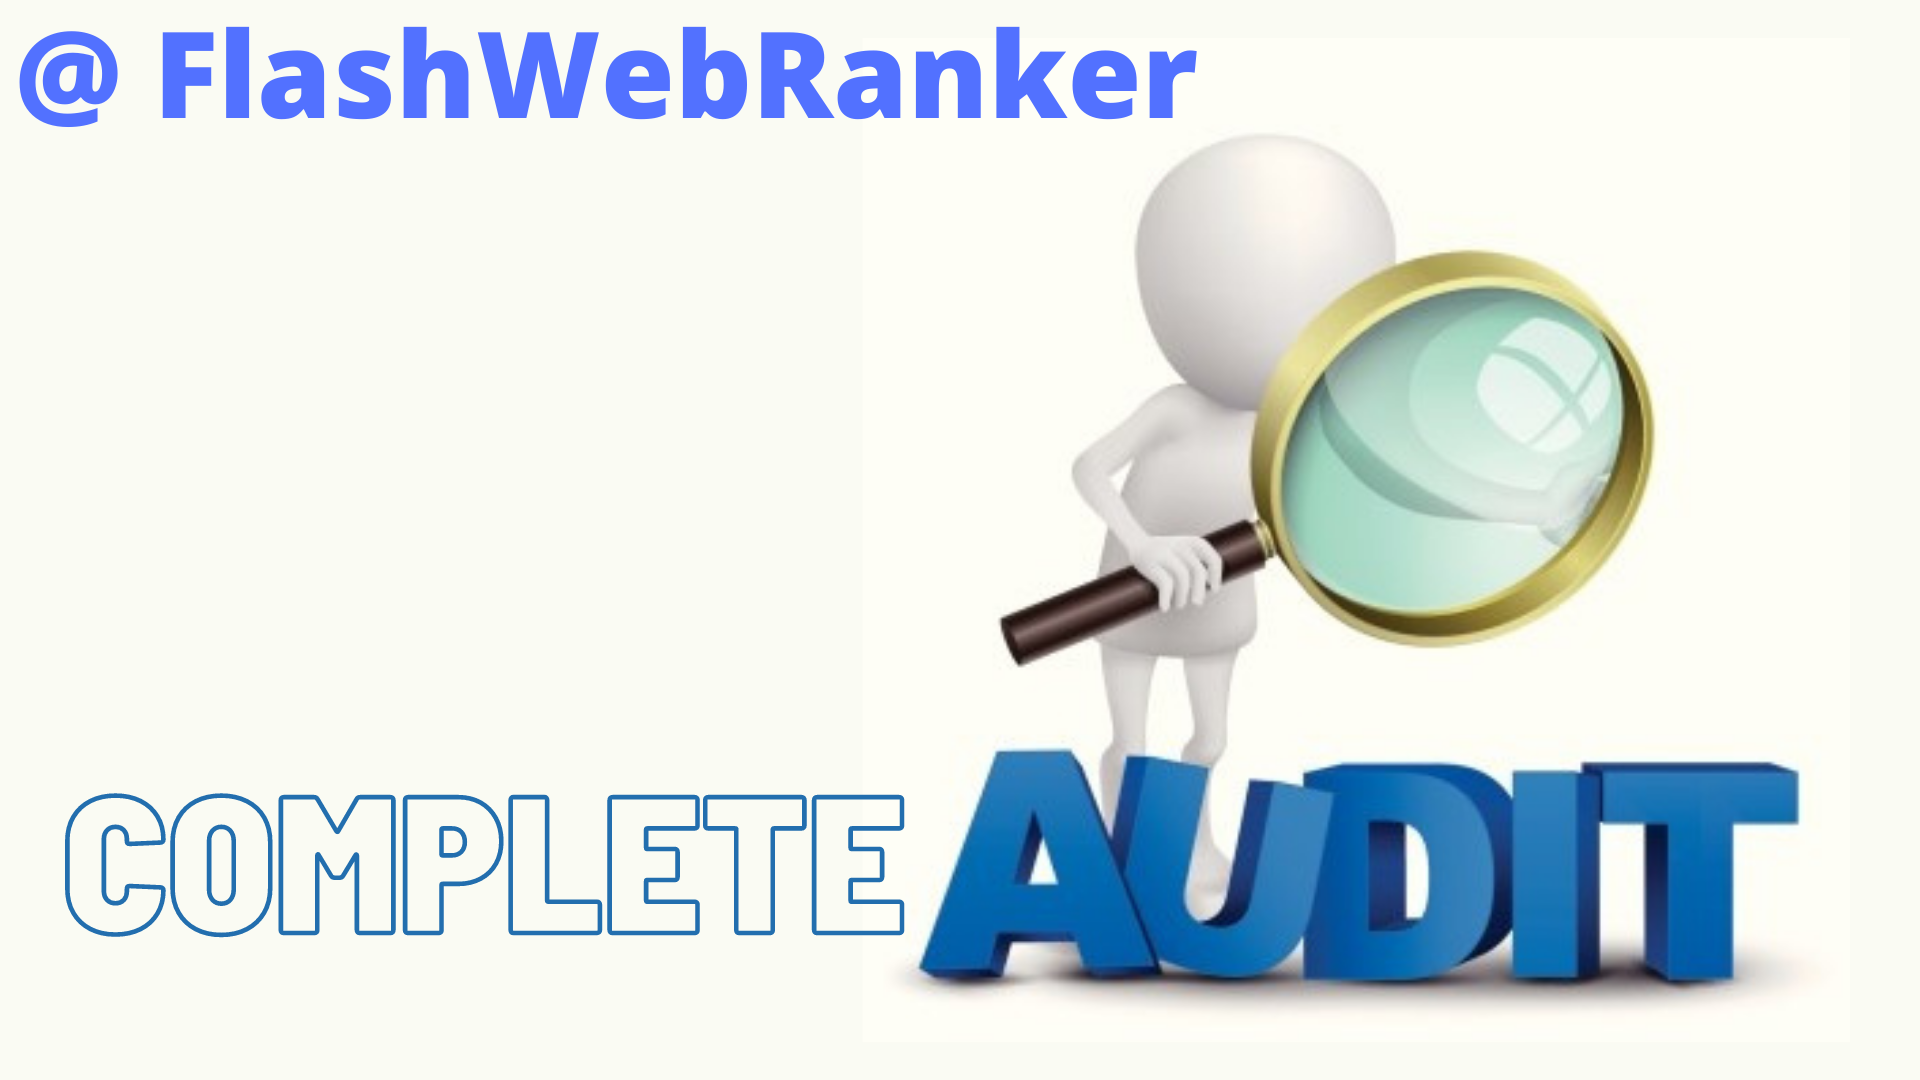 I will provide you Complete Audit that will help you to rank your site